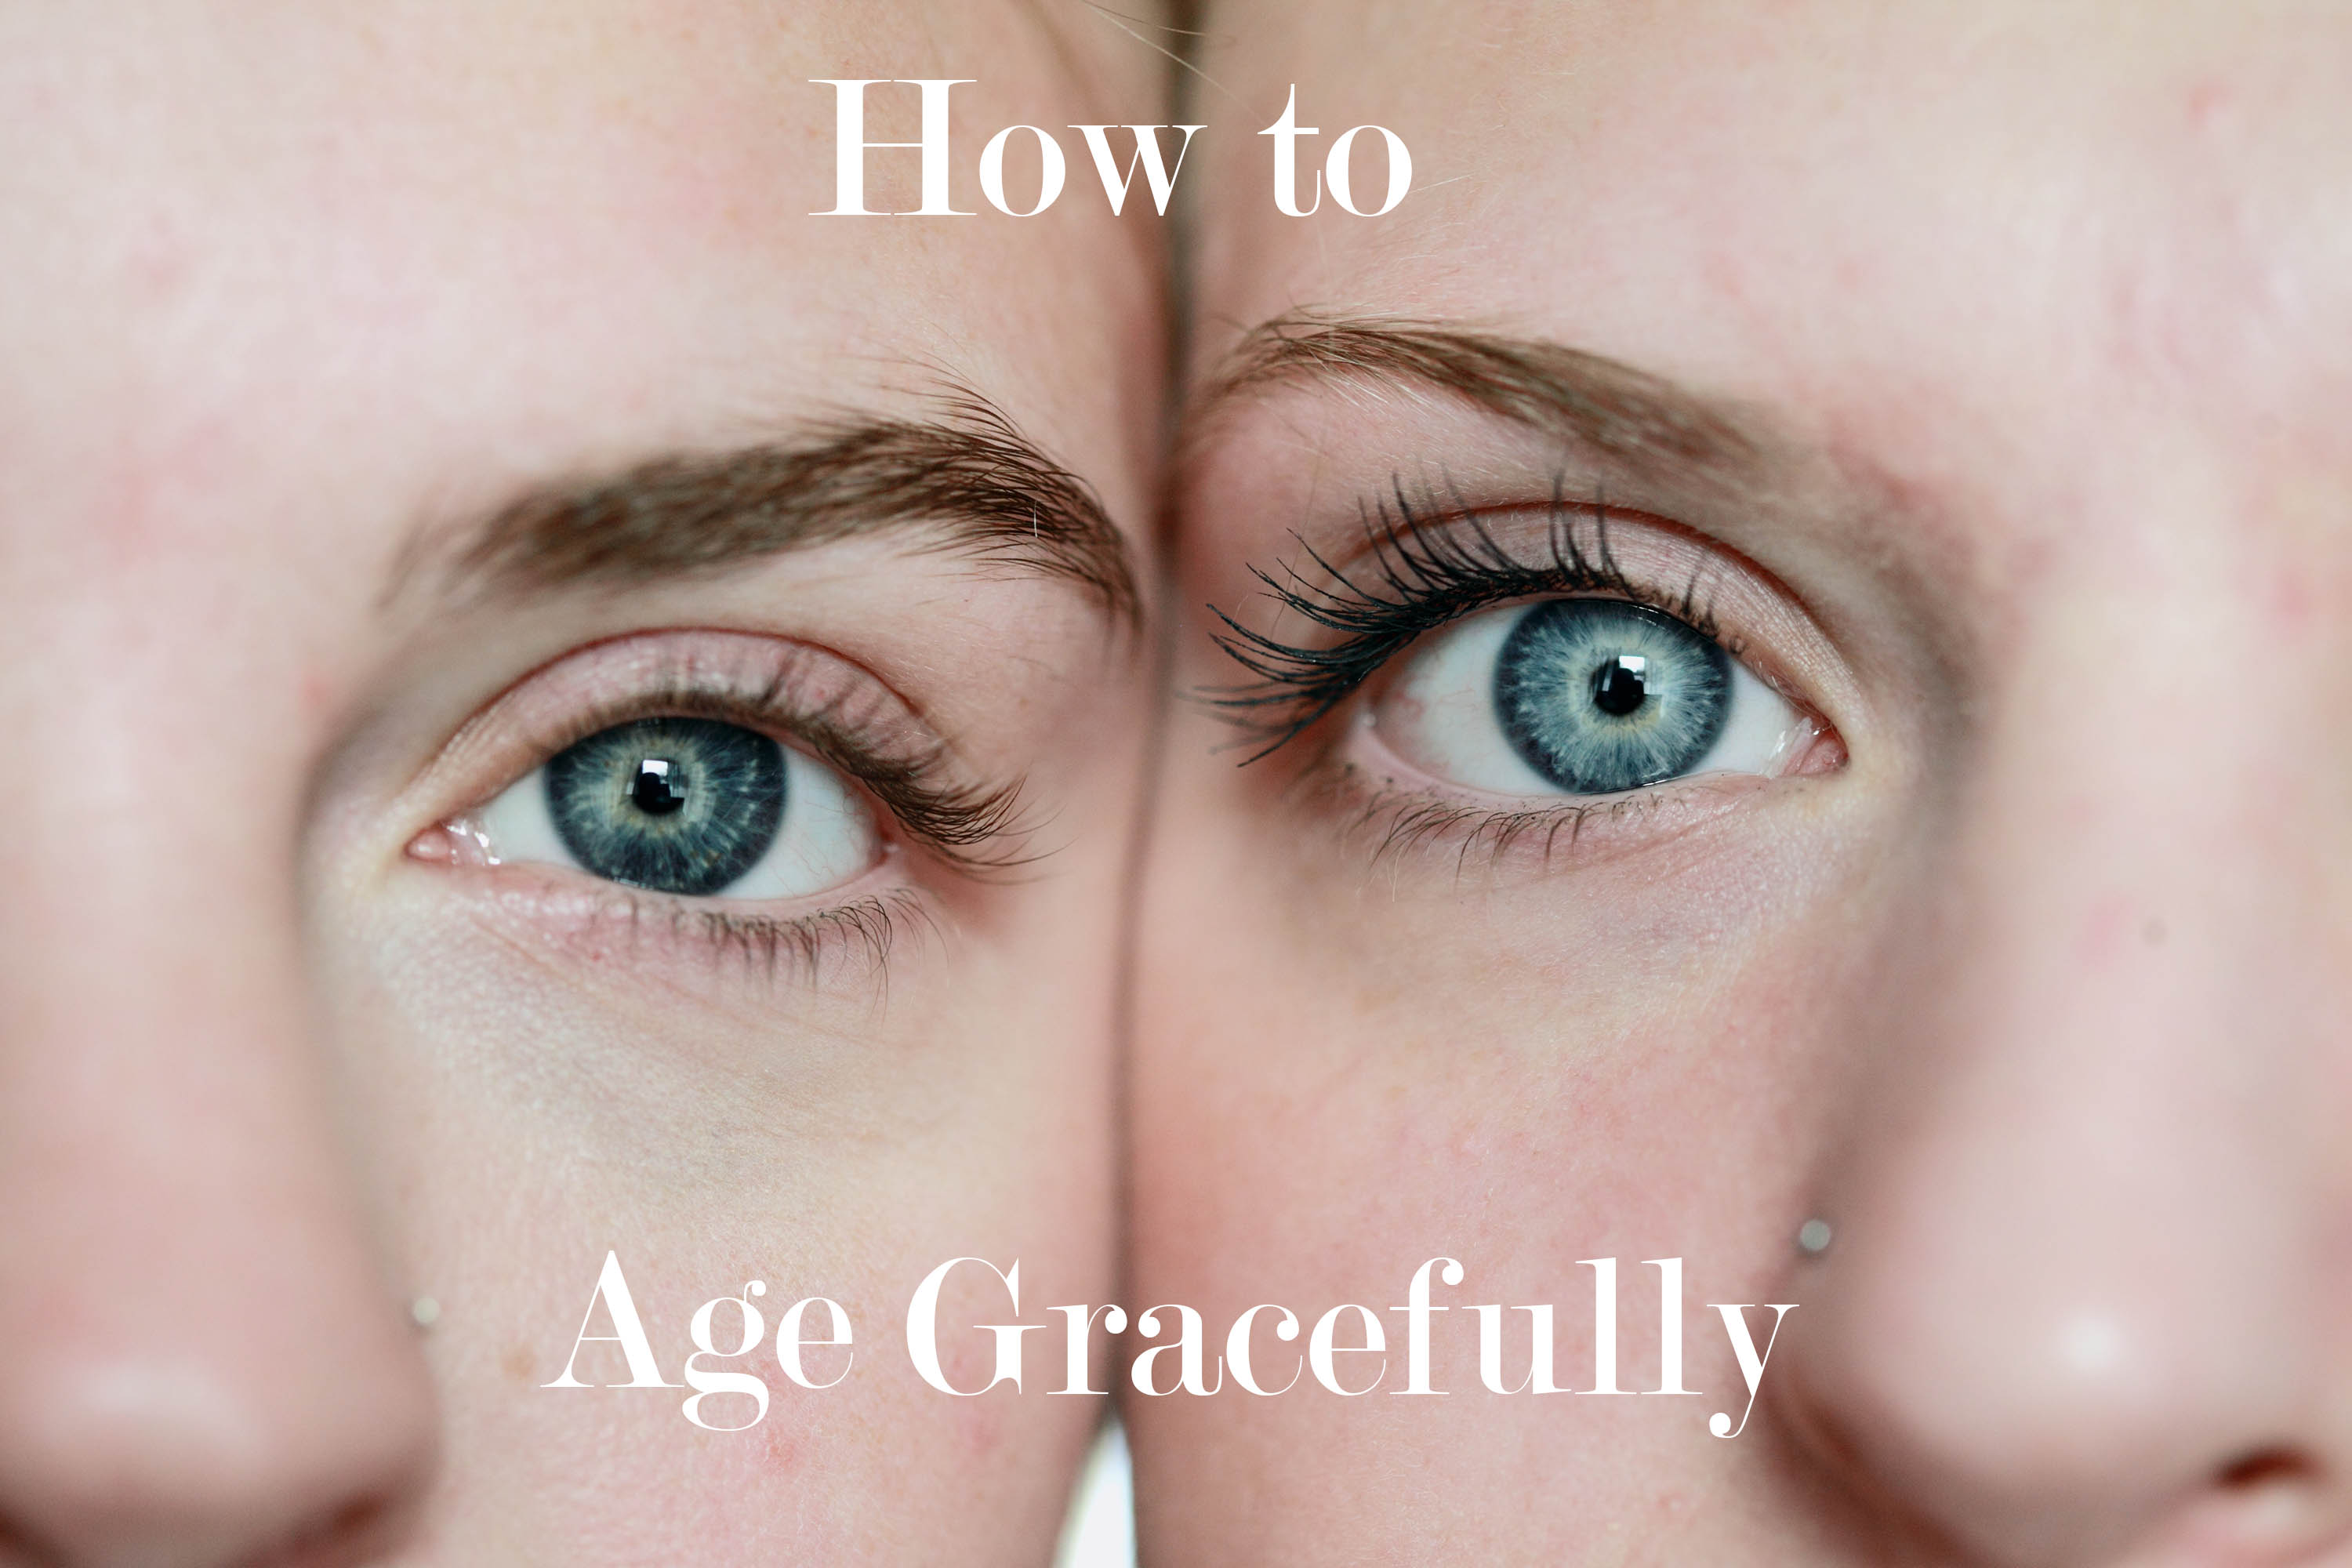 Best Tips for How to Age Gracefully